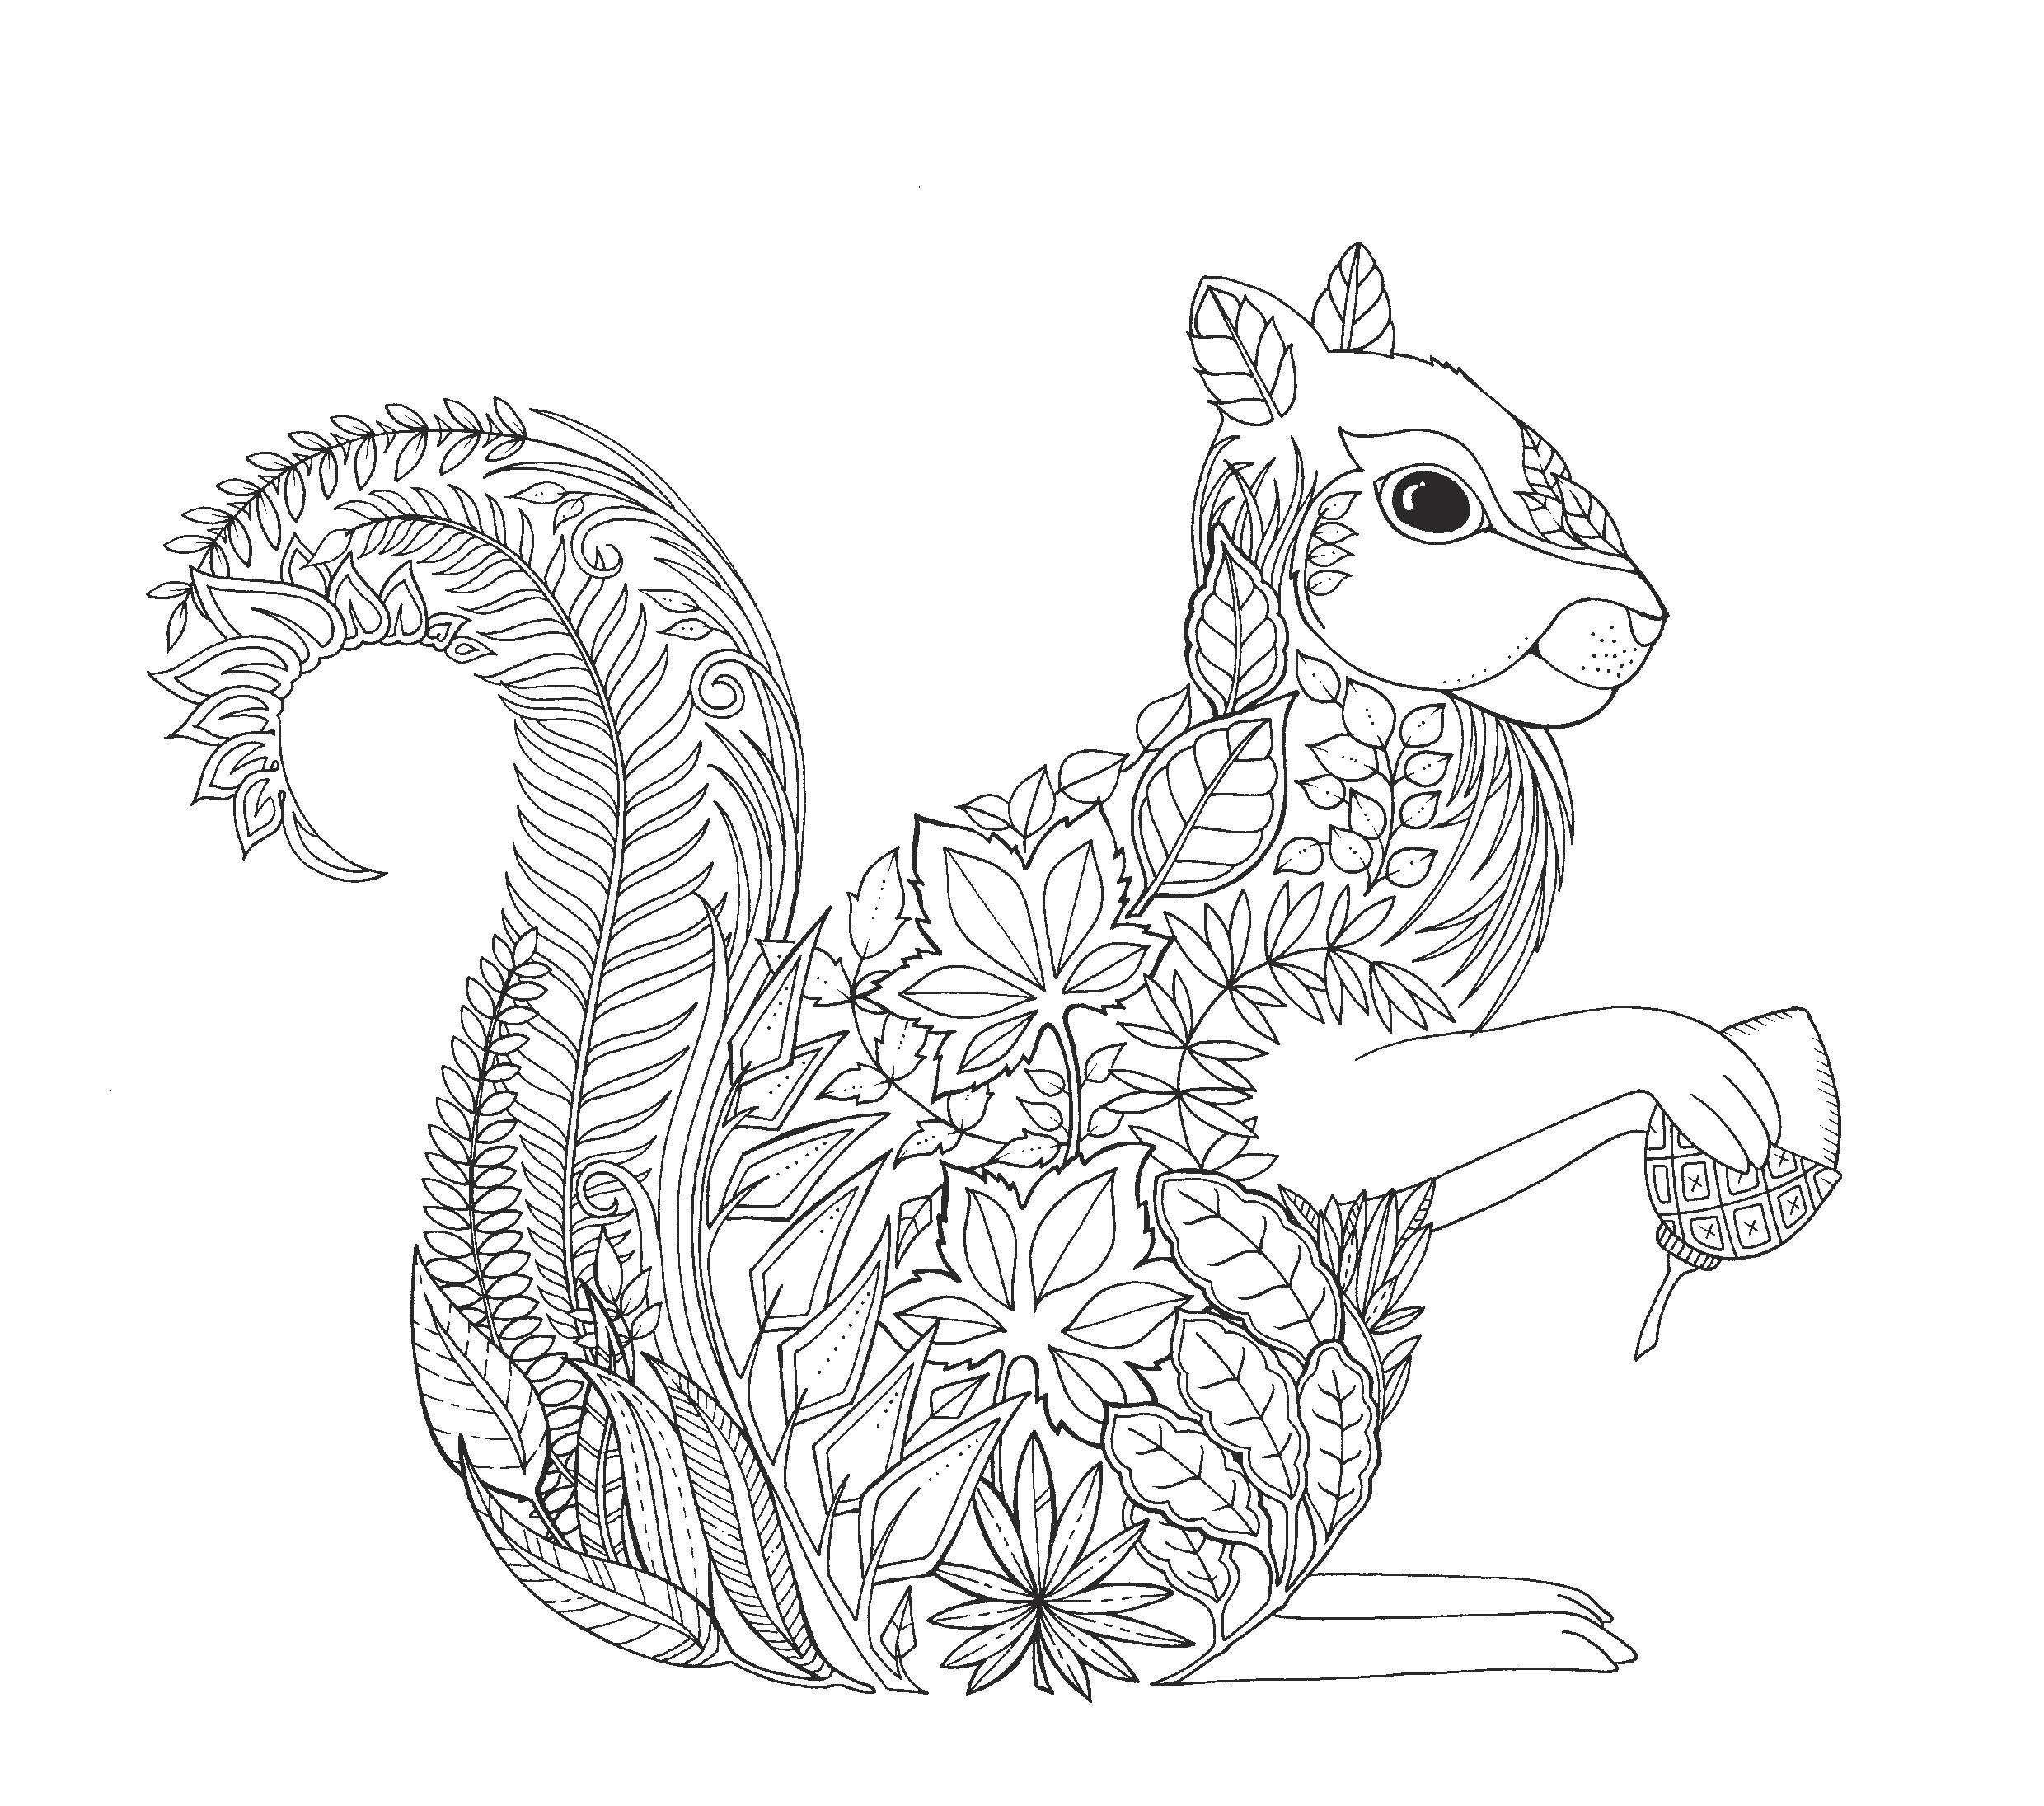 Squirrel Artist Johanna Basford Enchanted Forest Coloring Pages Garden Flower Colouring Adult Detailed Advanced Printable Kleuren Voor Volwassenen Coloriage